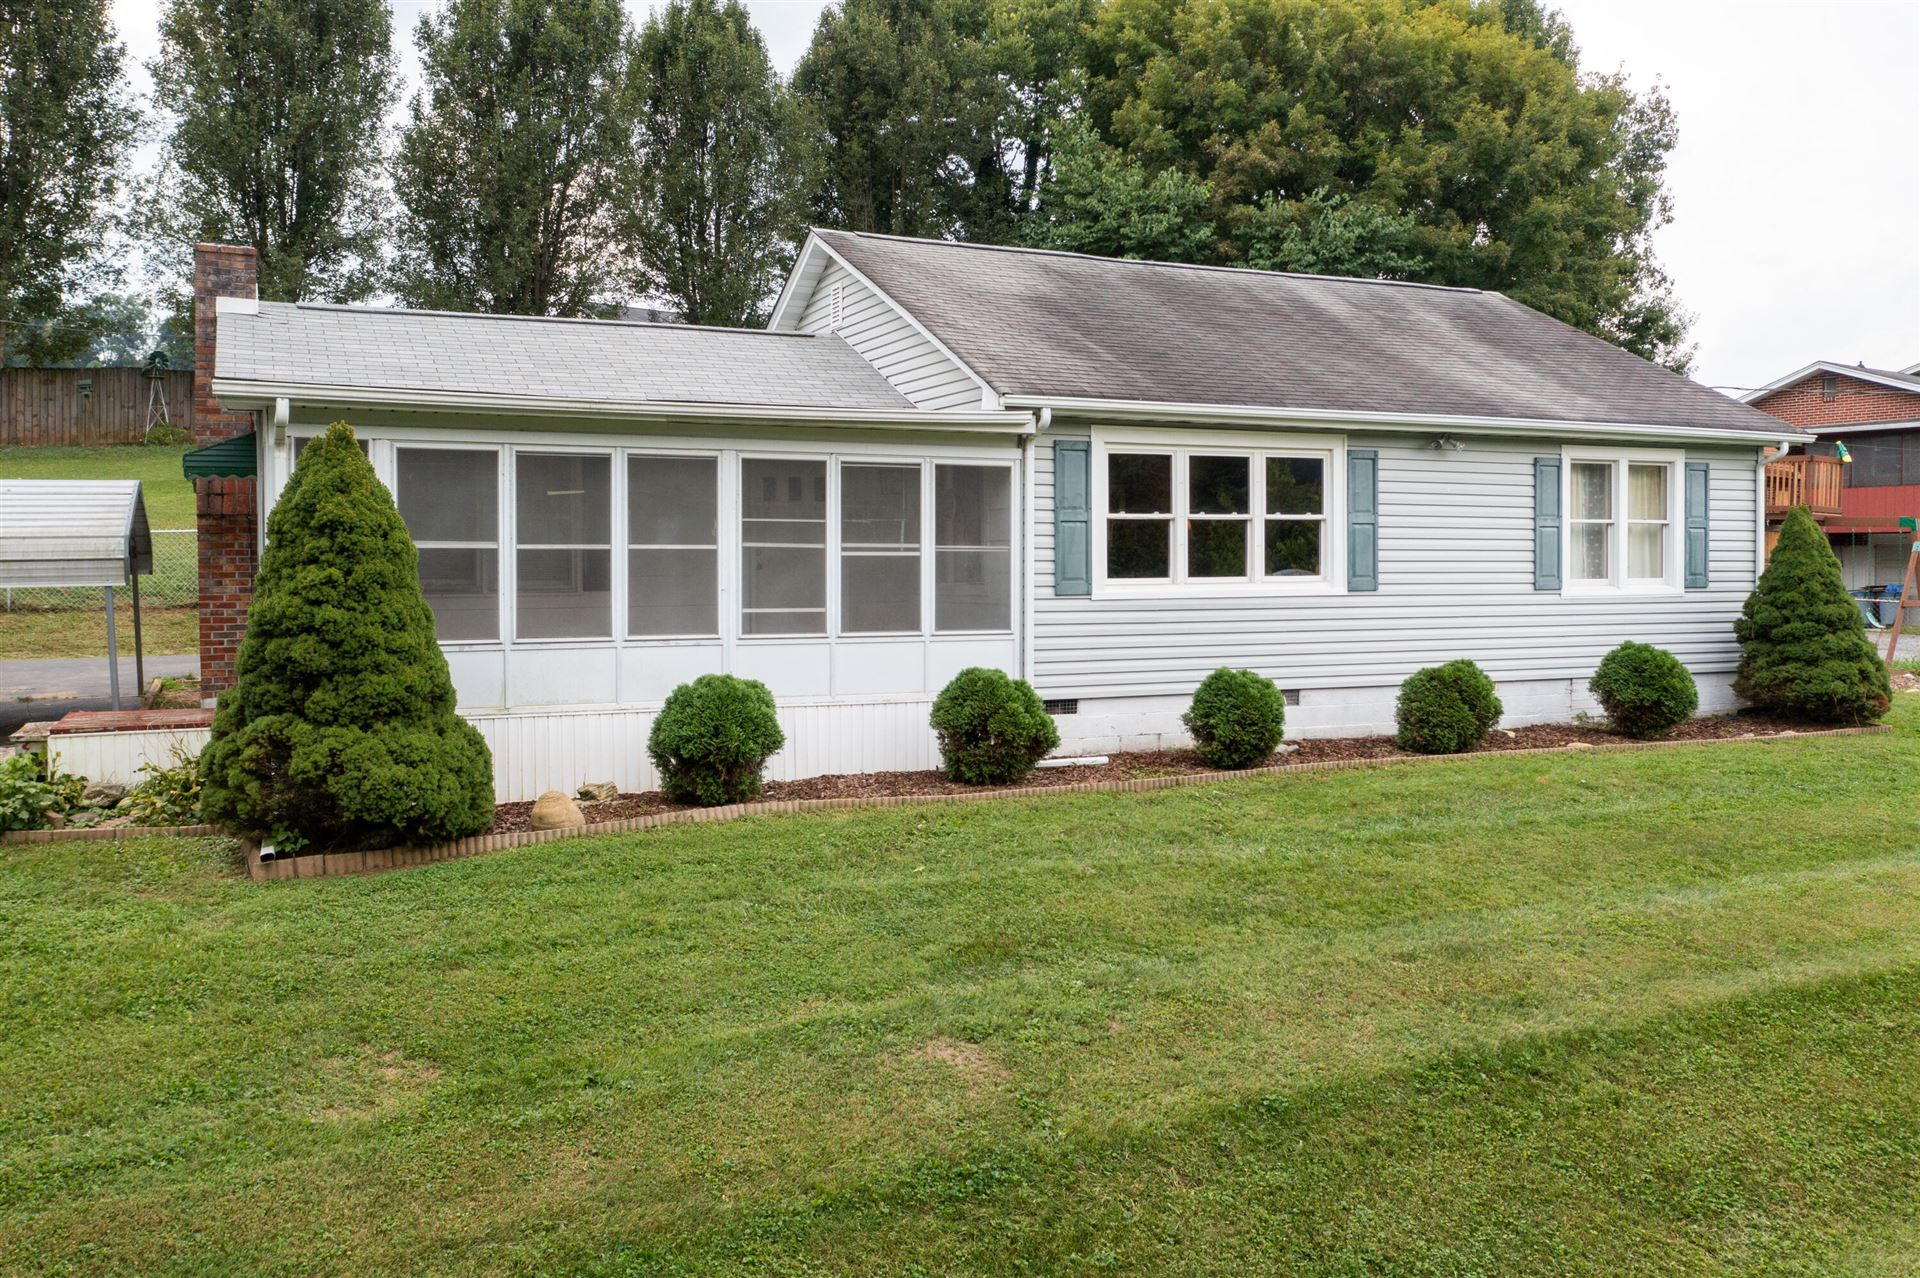 Photo of 133 Lakeview Drive, Bluff City, TN 37618 (MLS # 9928698)